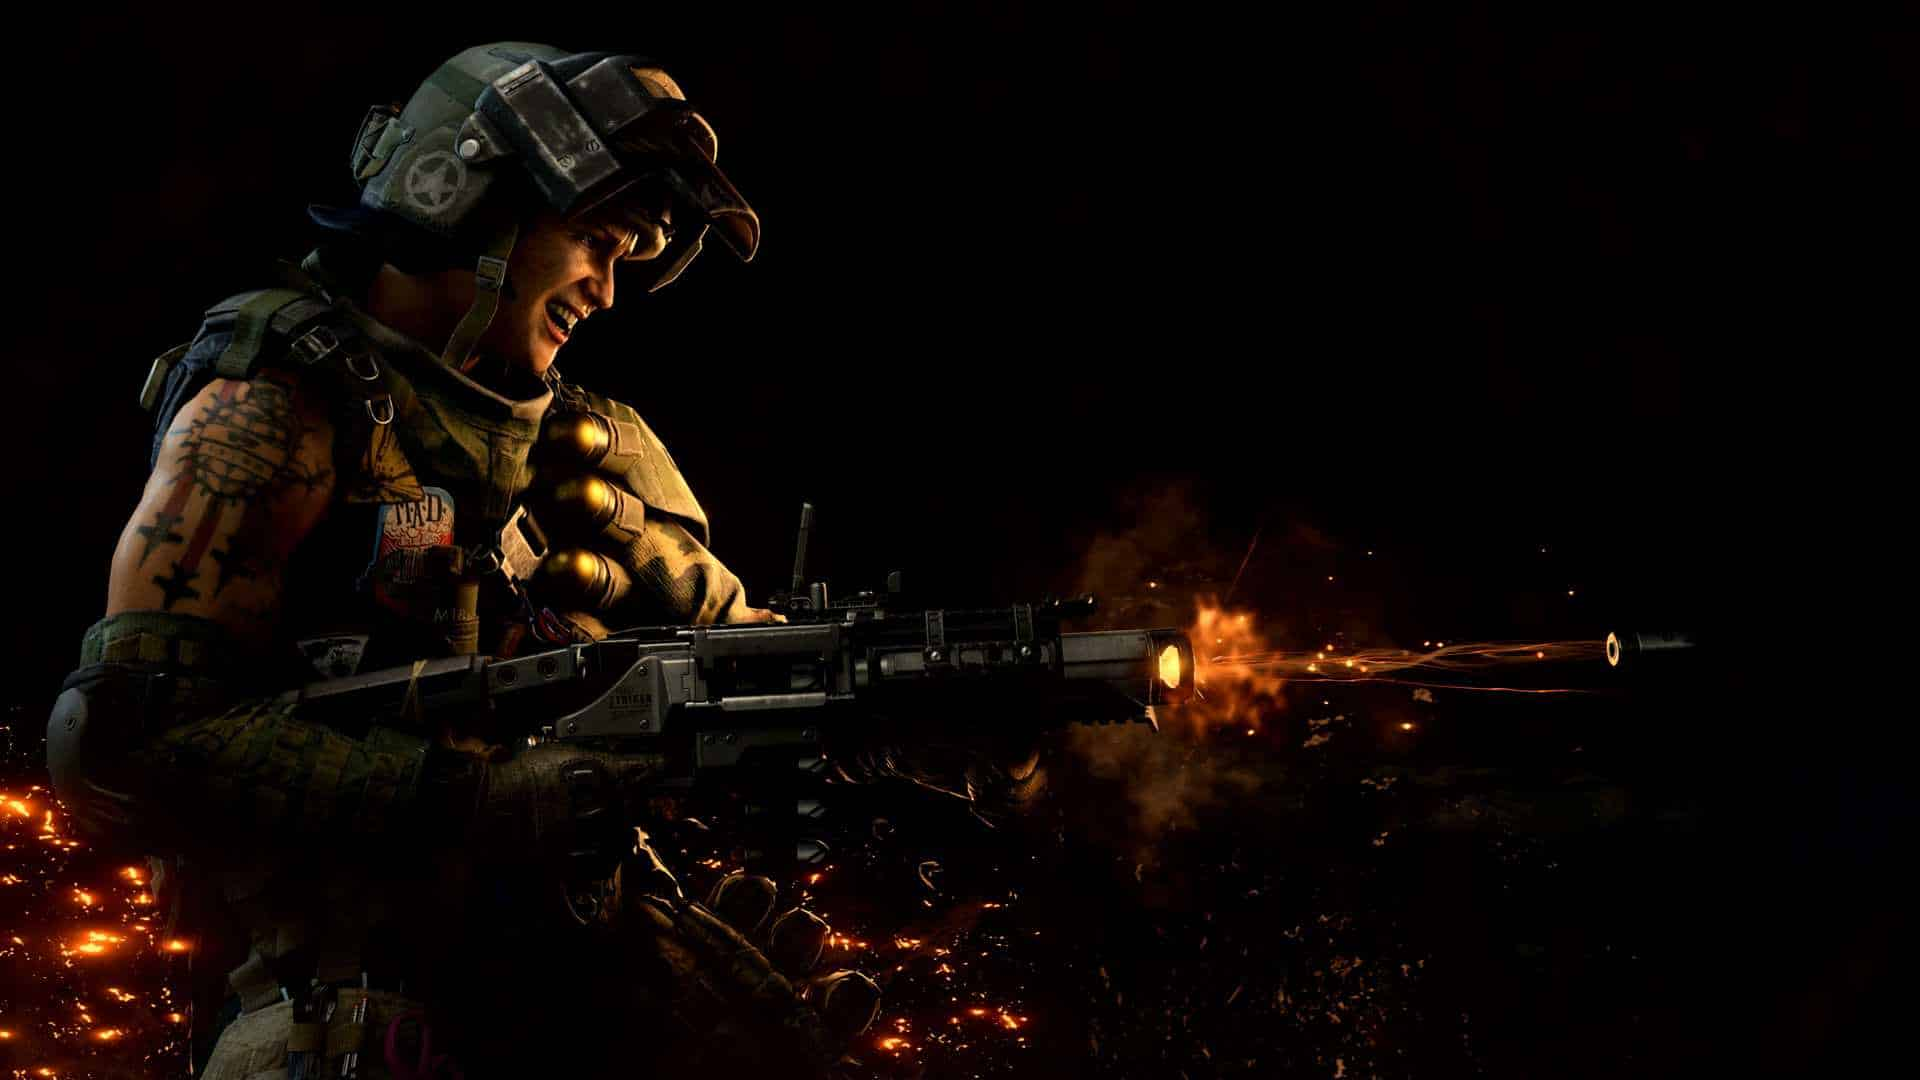 Call Of Duty Black Ops 4 PREVIEW SCREENSHOT1 1 - بازی Call Of Duty Black Ops 4 مخصوص PS4